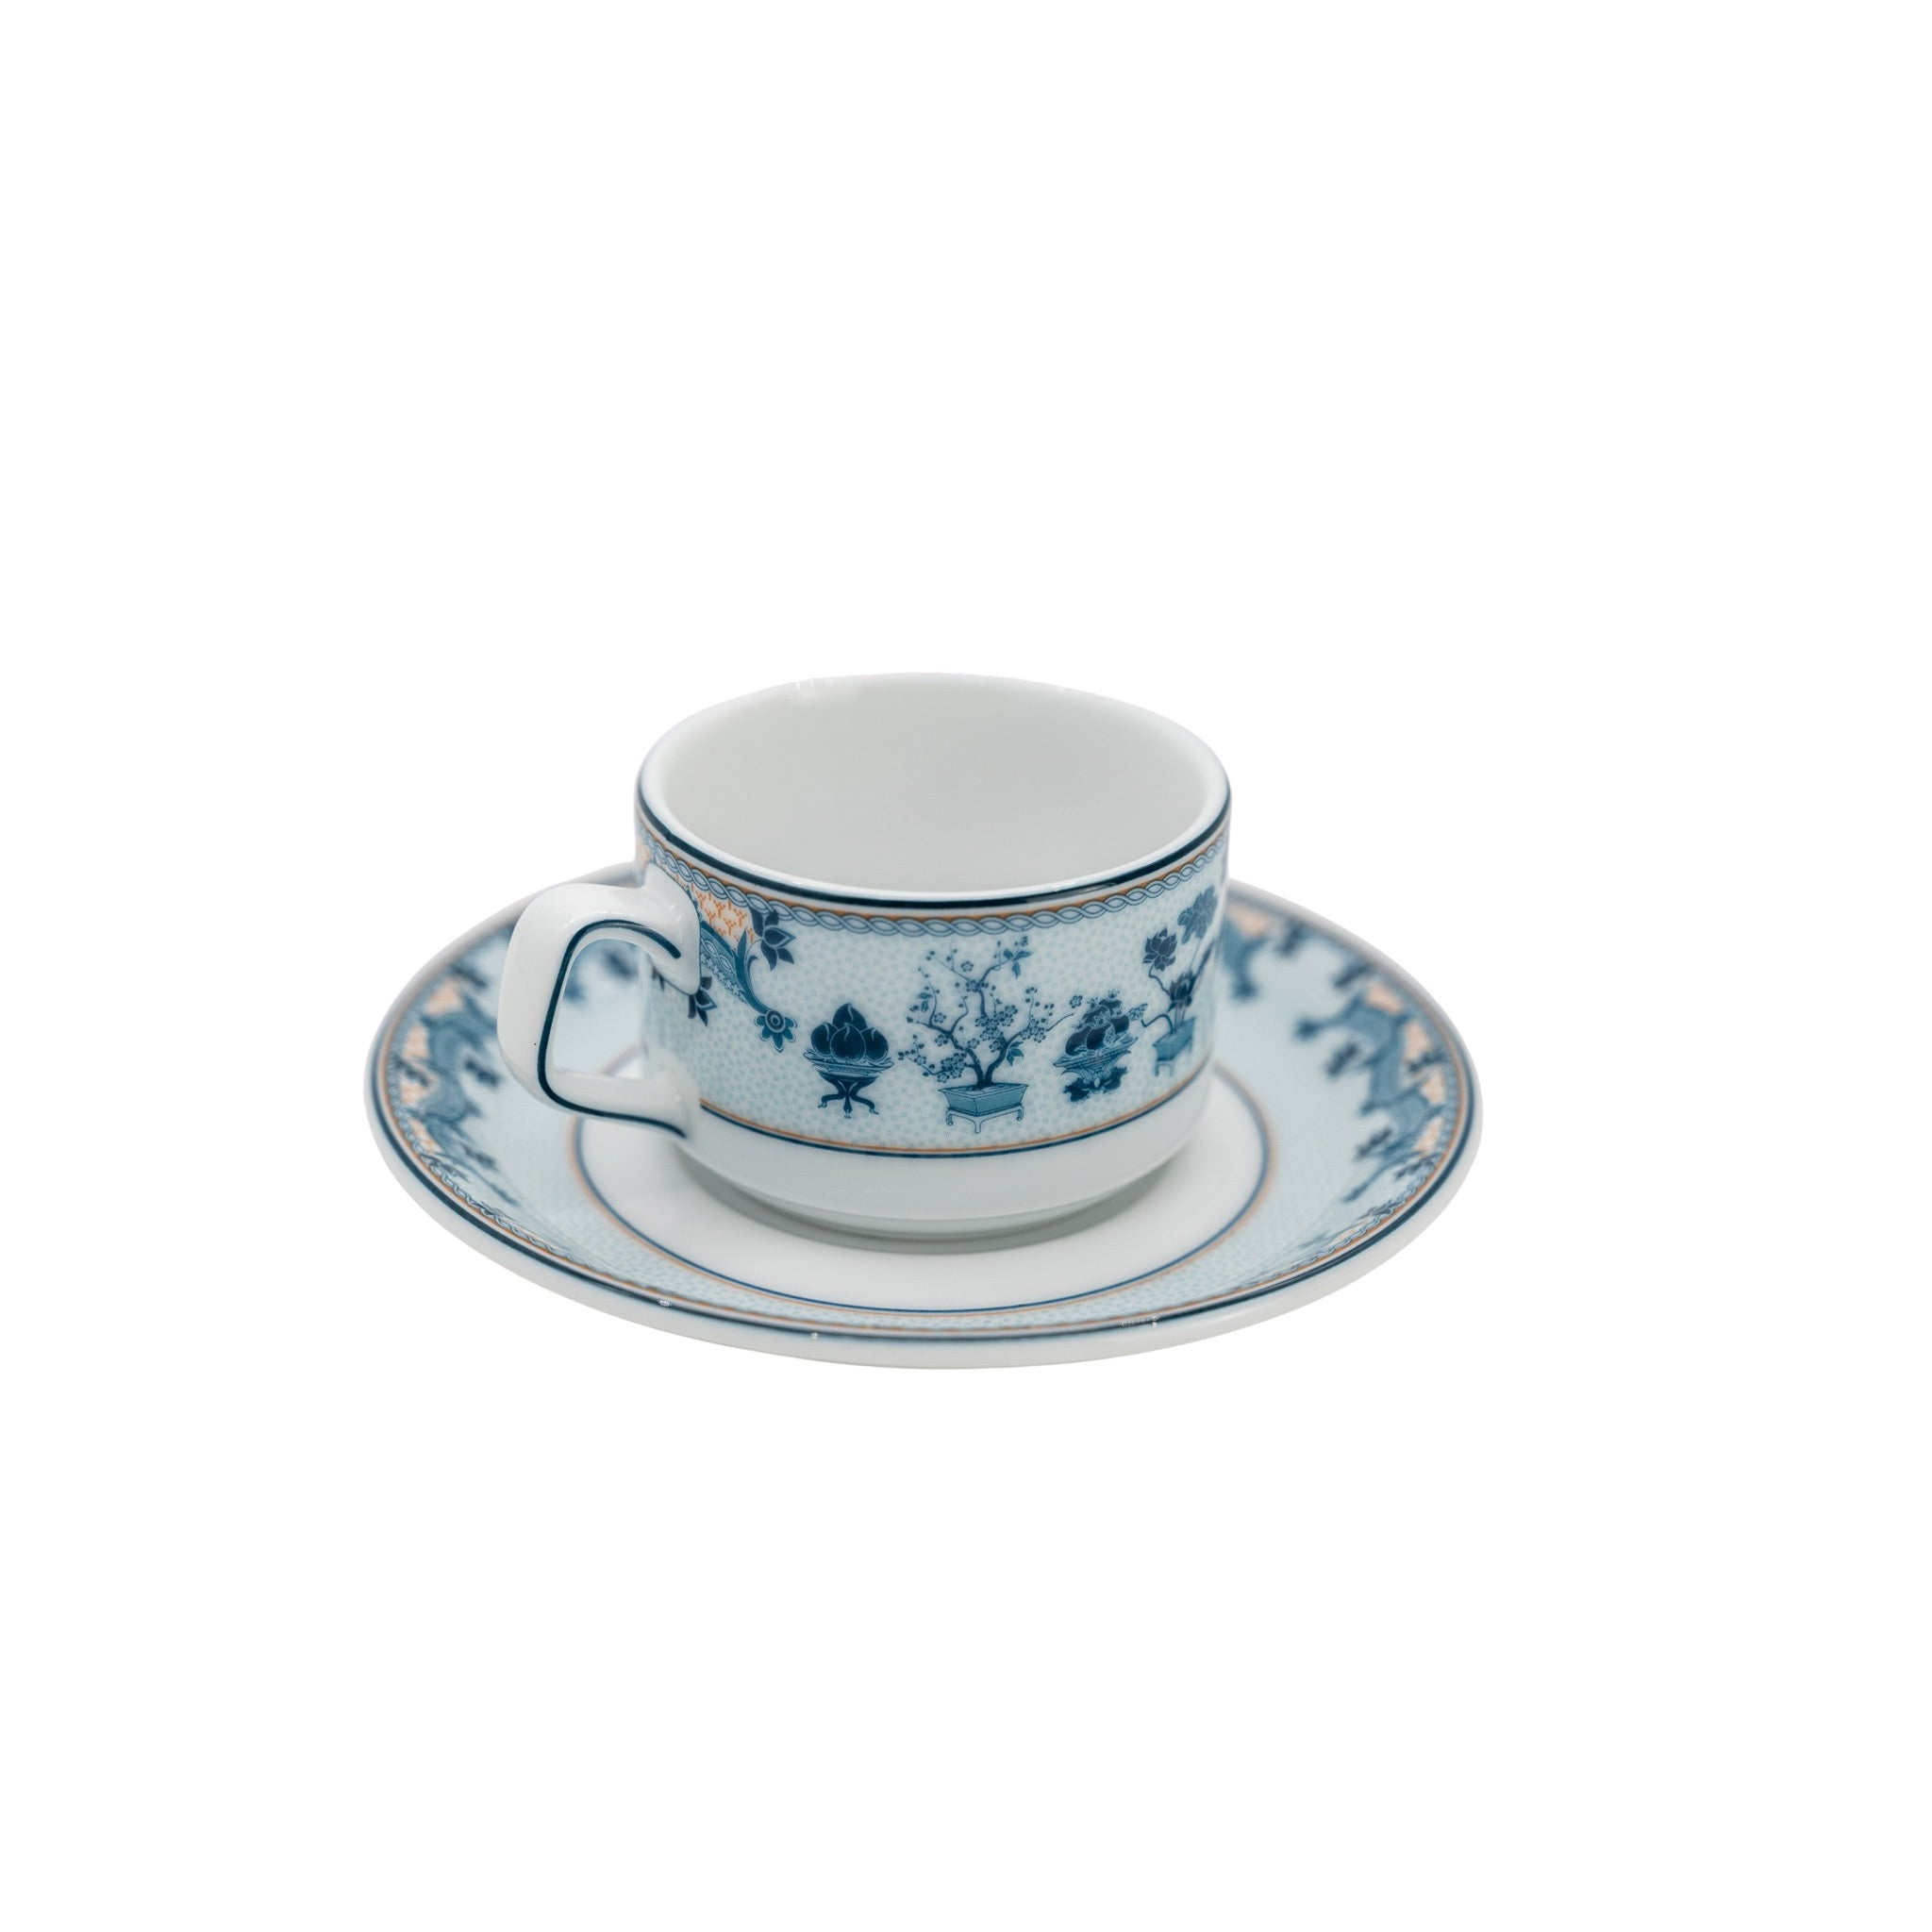 Jasmine Four Precious Artisan Tea Set 0.7L (Small Set)